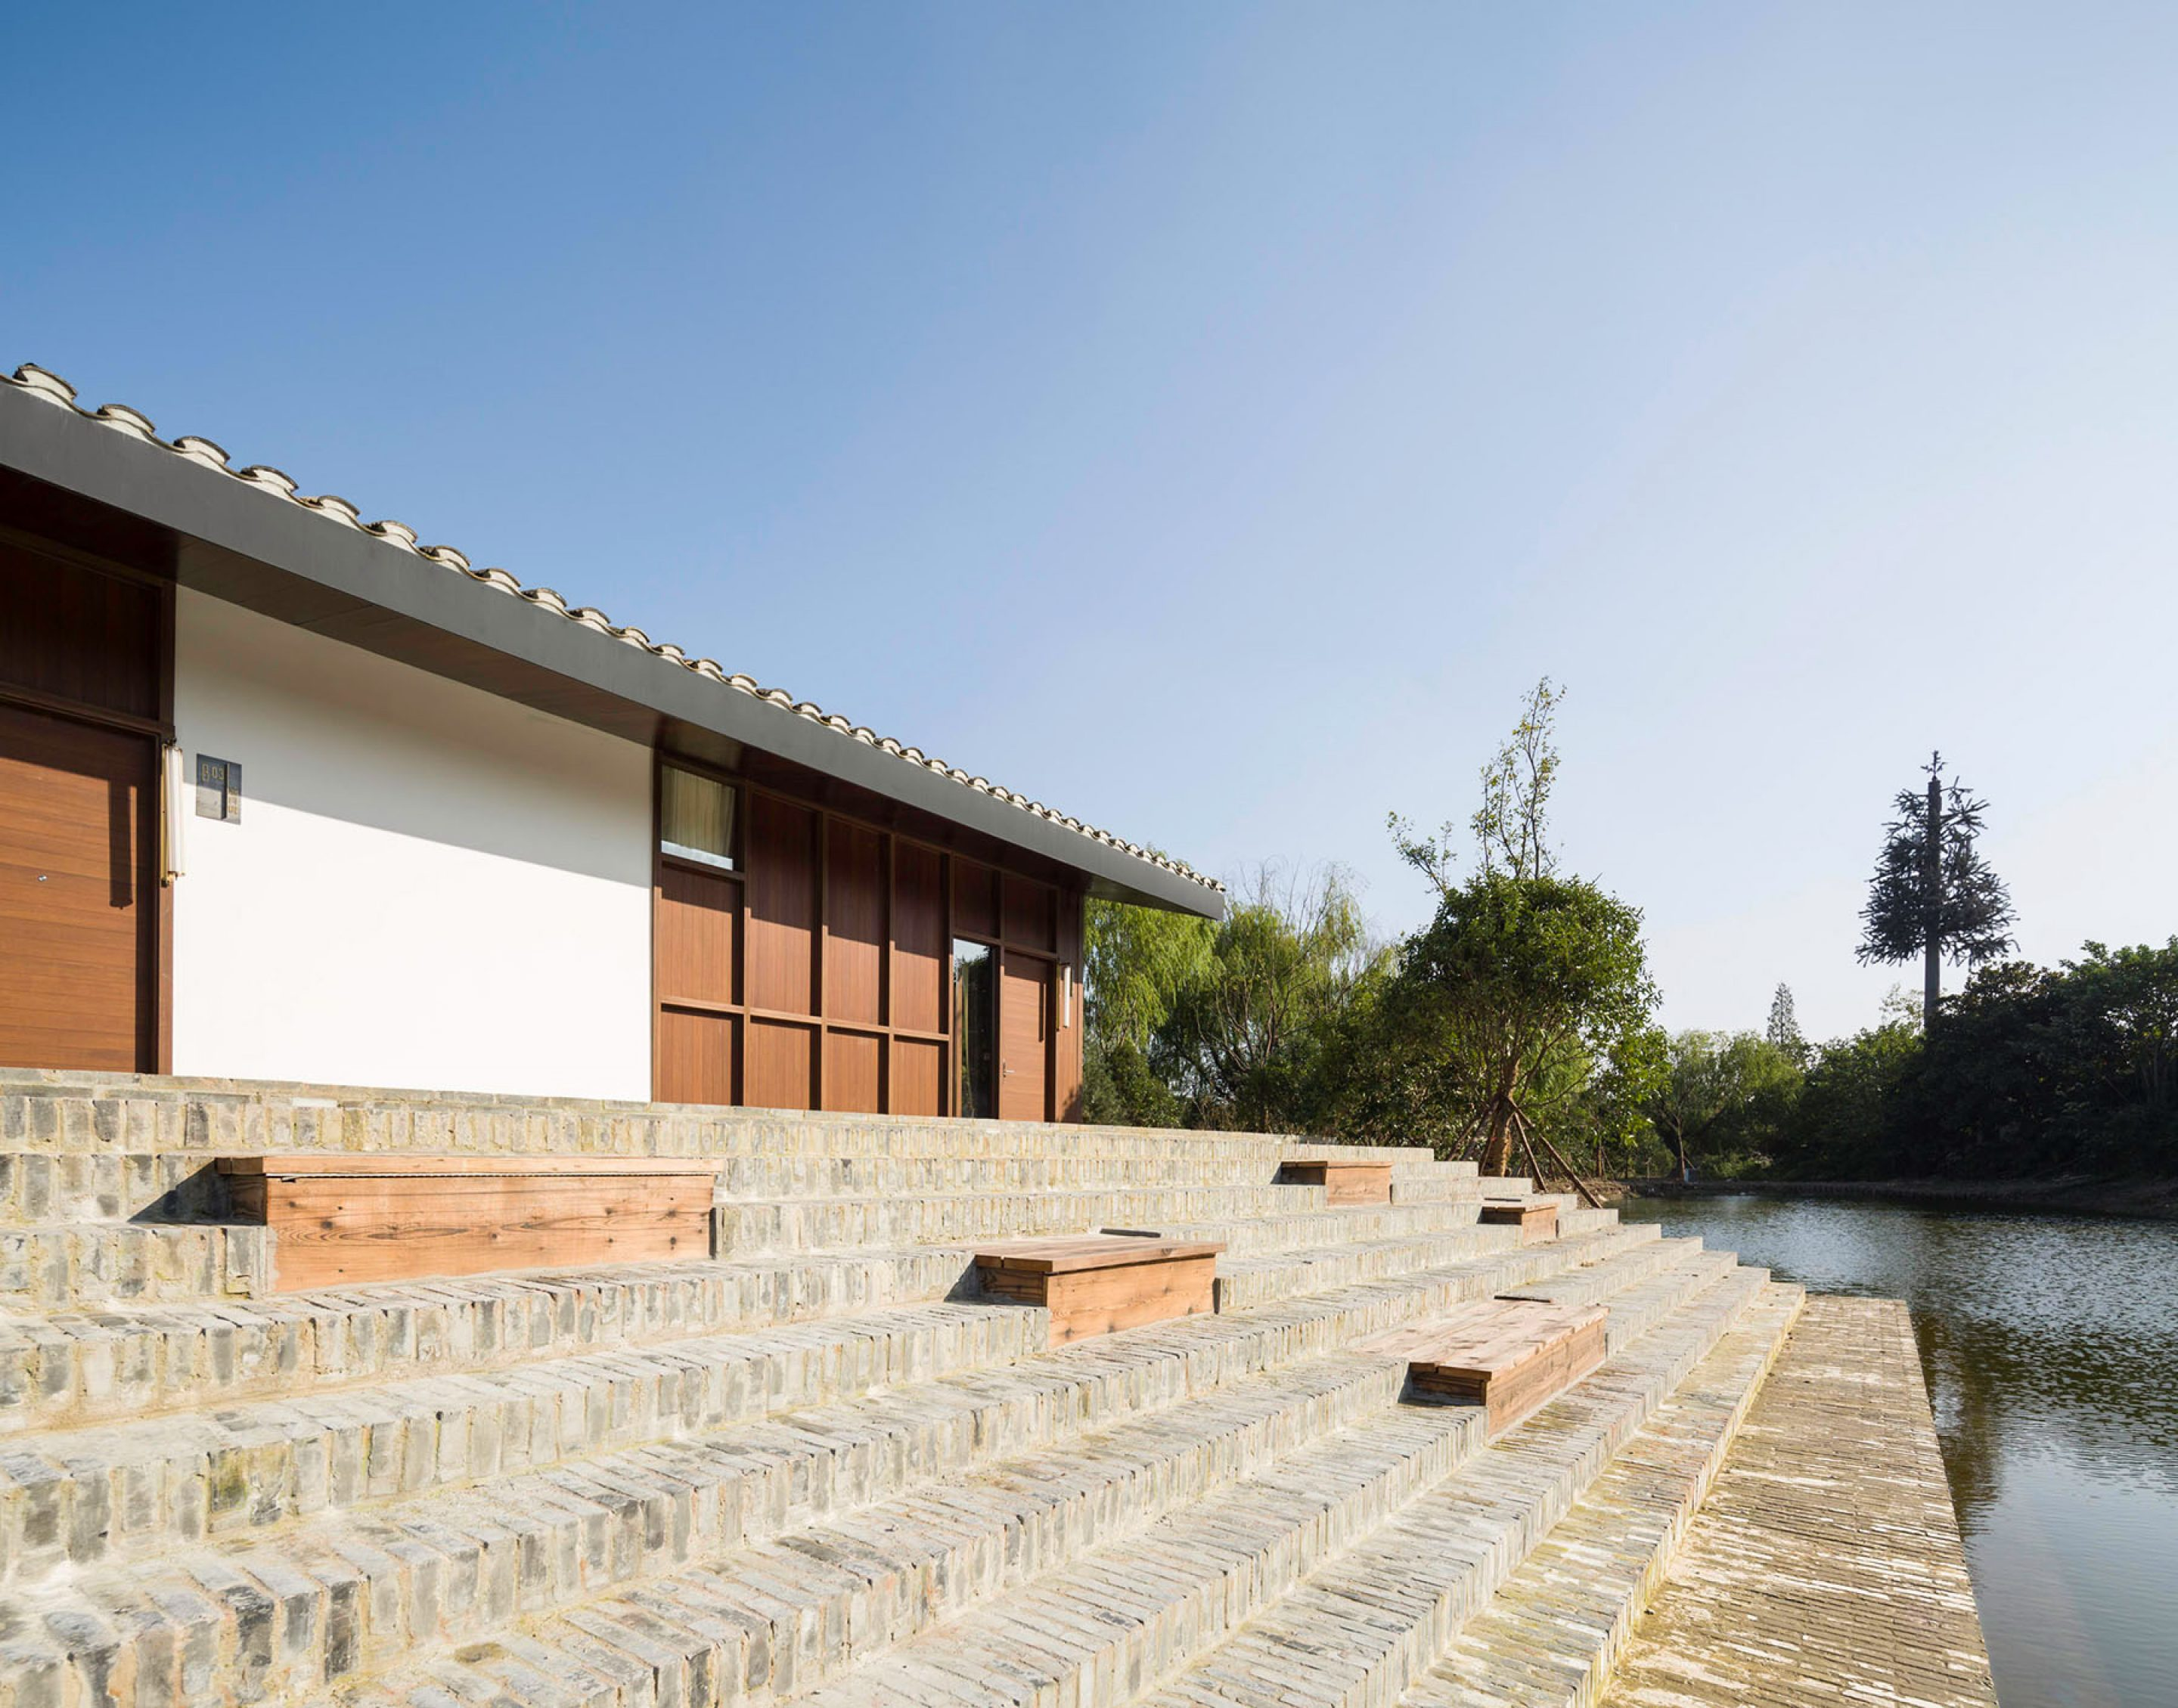 iGNANT-Architecture-Ner&Hu-Tsingpu-Yangzhou-Retreat--09